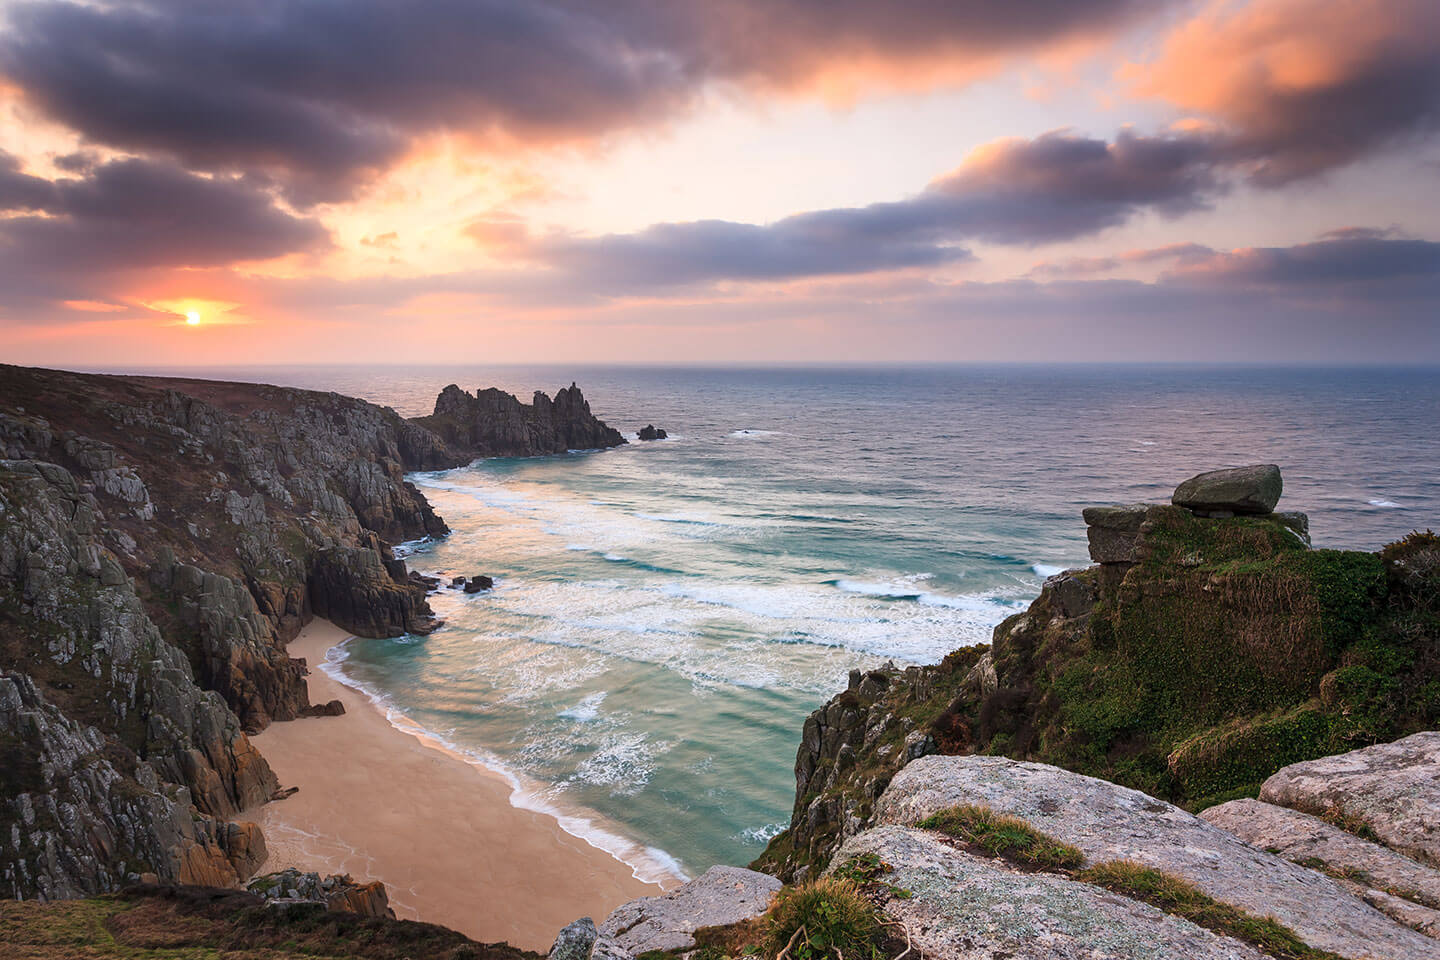 Cornwall Beach - Sparkling shores and winding lanes